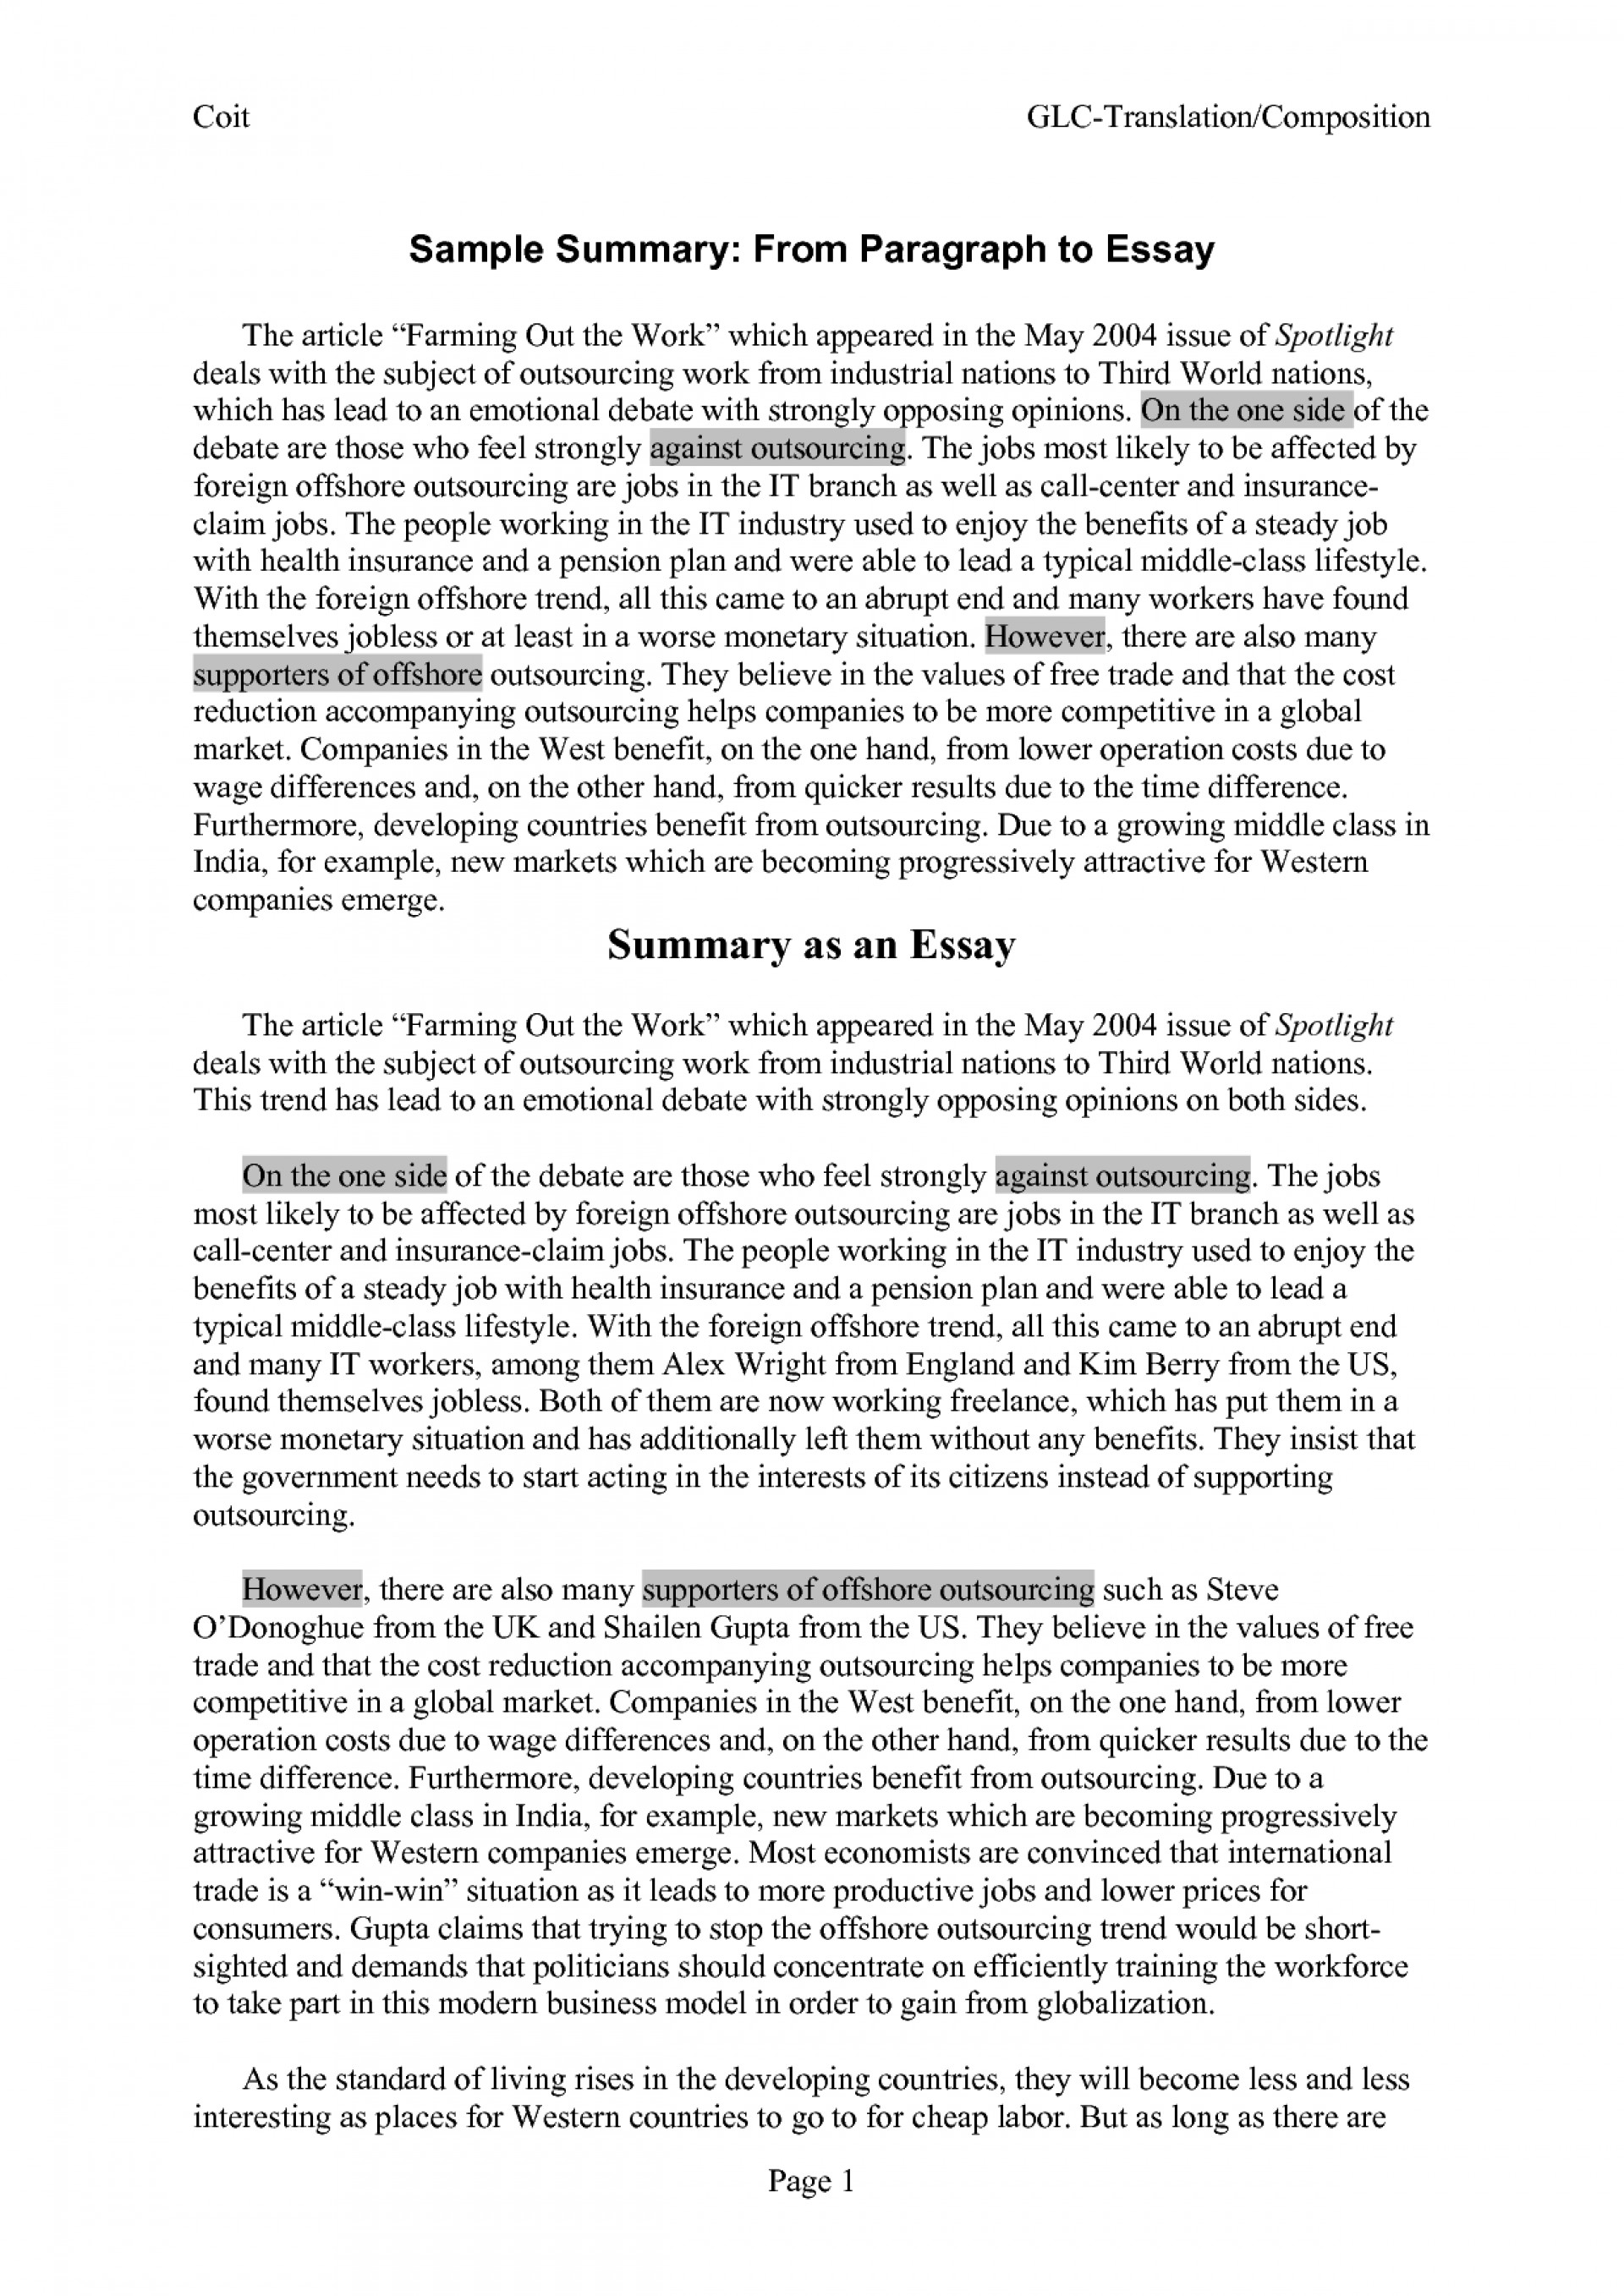 005 Essay Example Sample Summary Papers 248300 Imposing Form 4 Paper Examples Apa Critical 1920